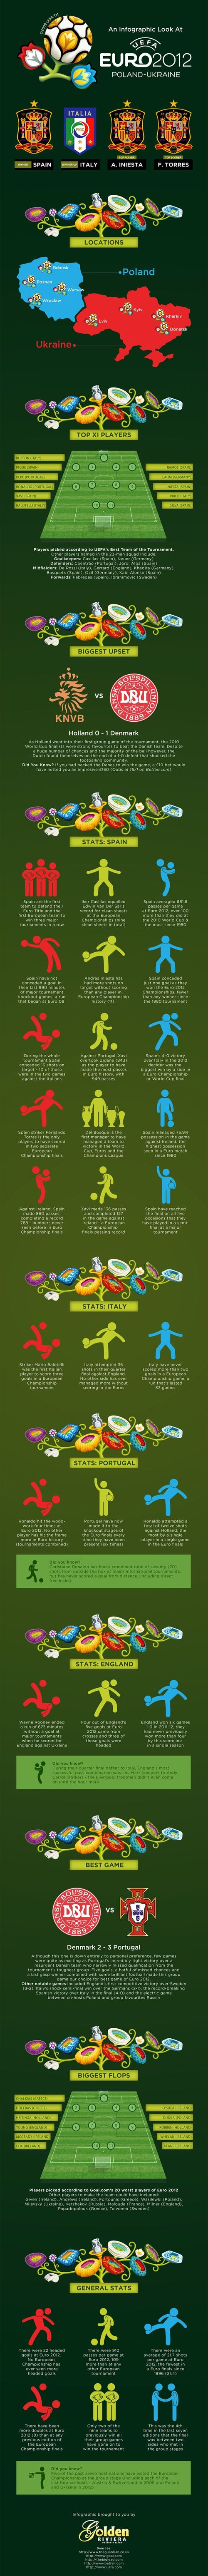 The Ultimate Euro 2012 Infographic